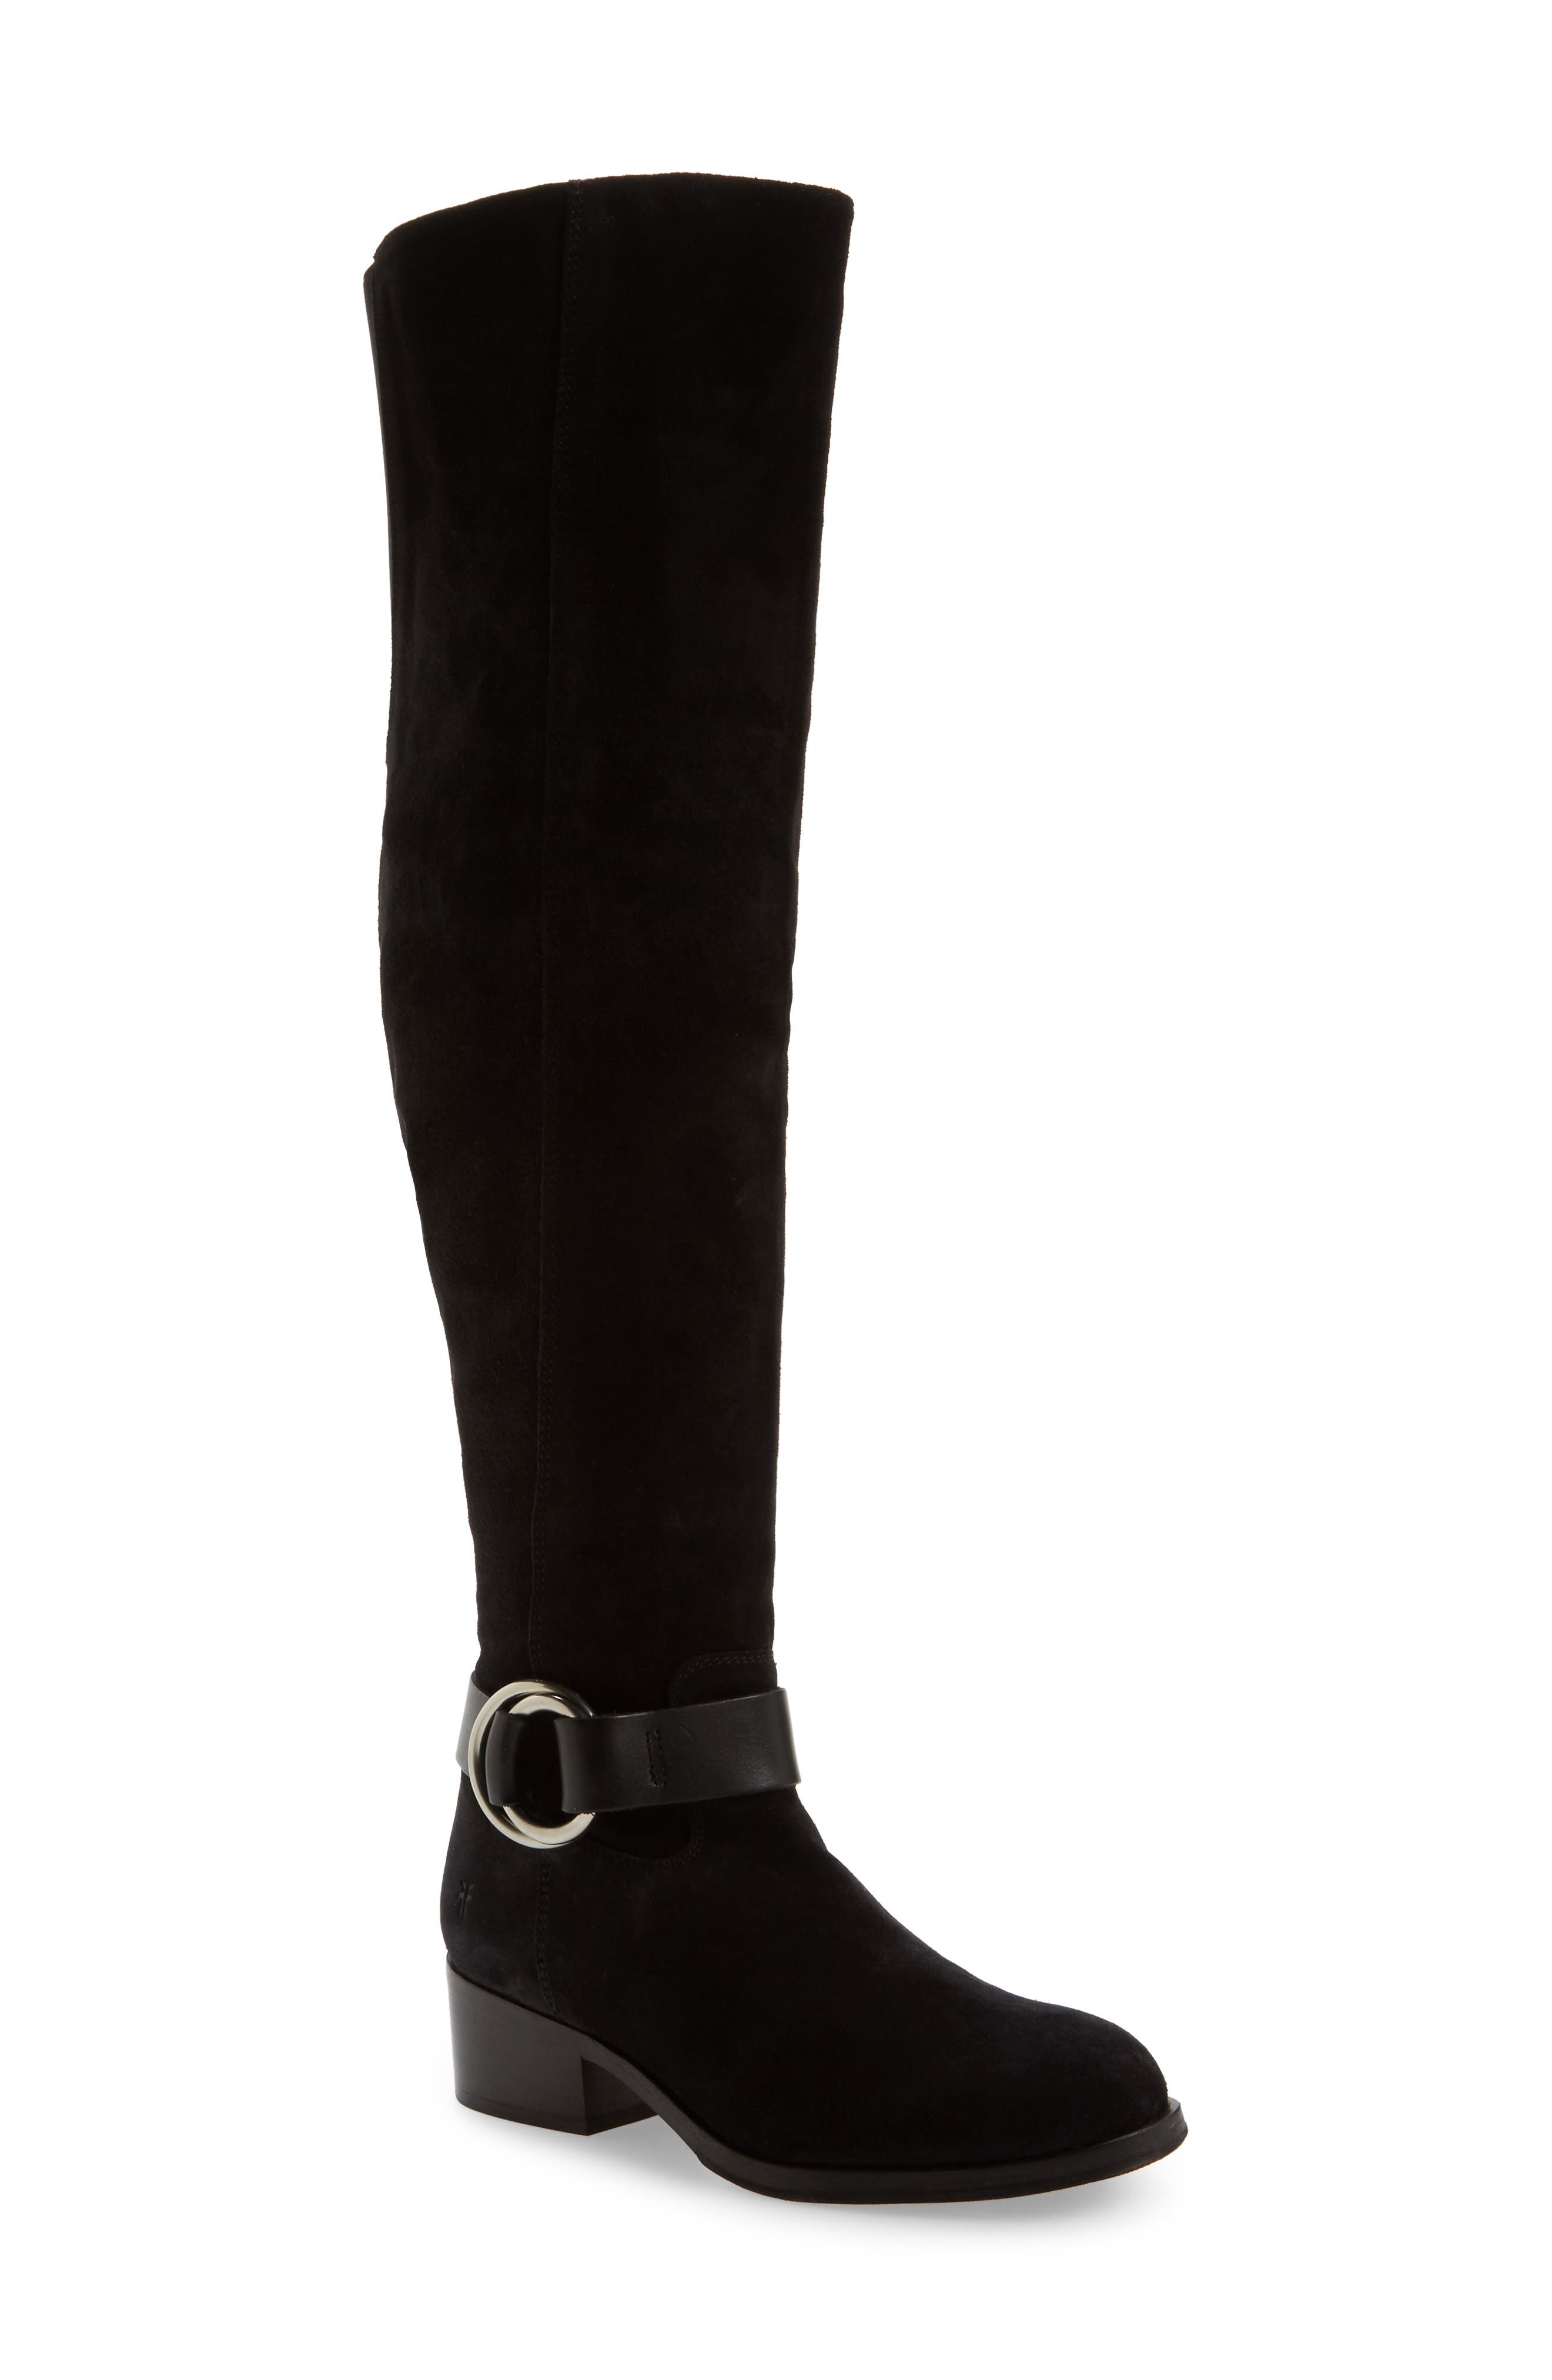 Kristen Harness Over the Knee Boot,                             Main thumbnail 1, color,                             001